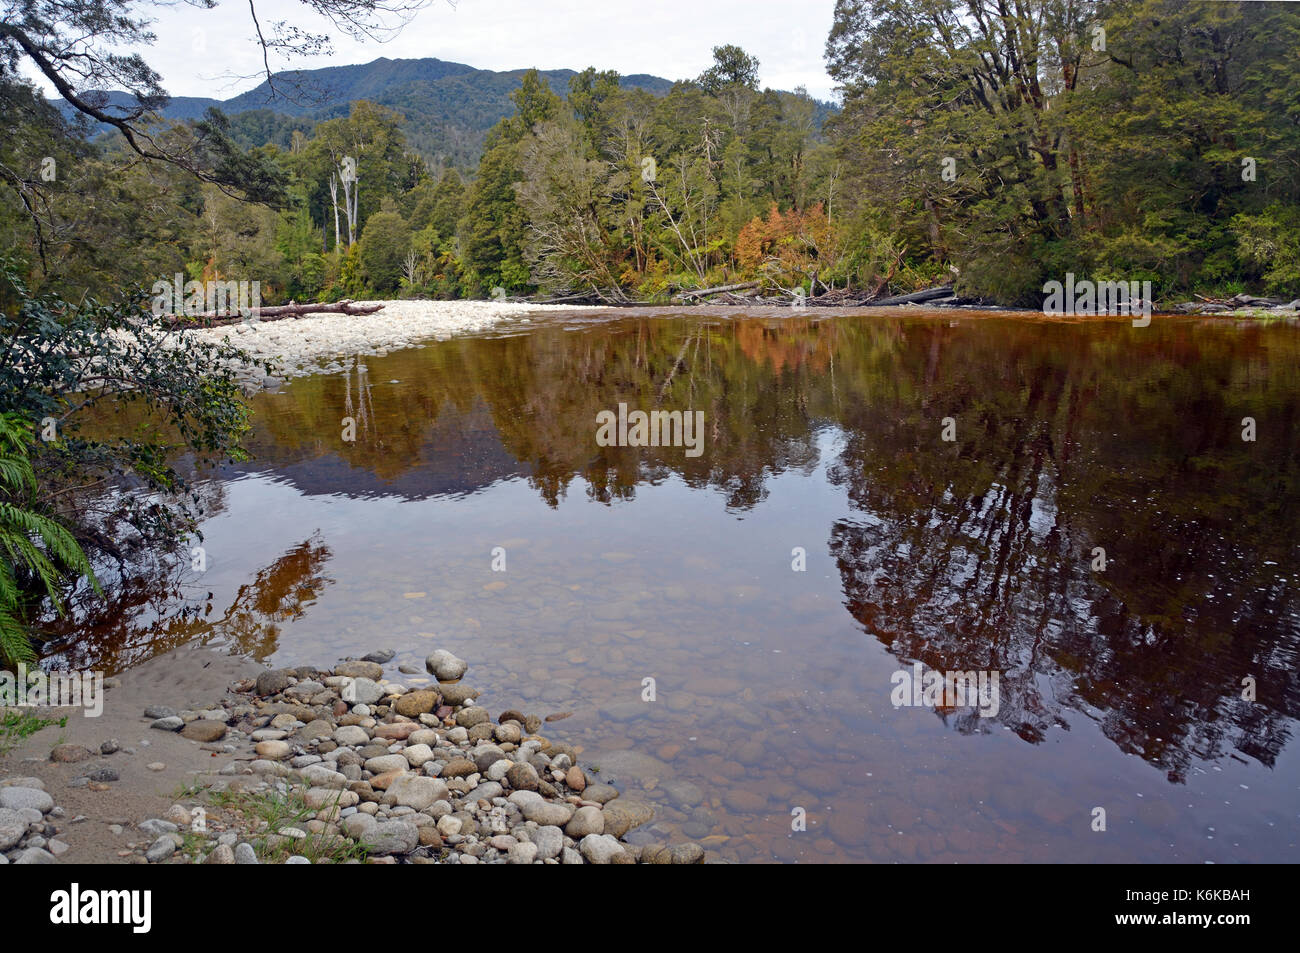 Reflections in the water of the Oparara River near Karamea, West Coast  New Zealand. Note the amazing golden brown Stock Photo